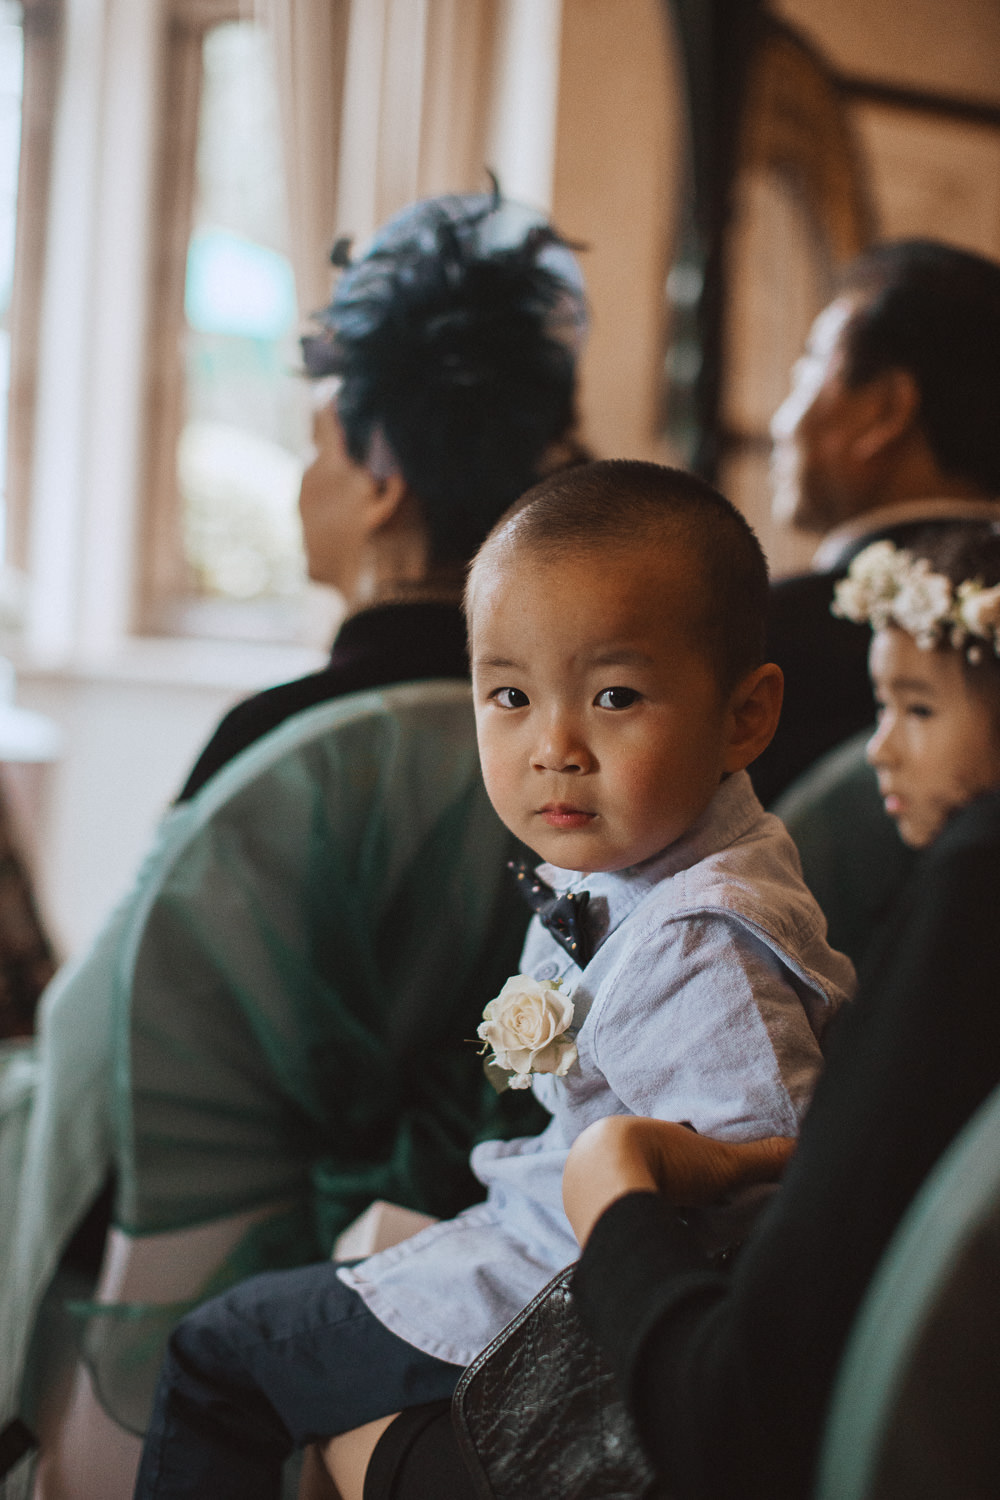 Chinese boy looking at the camera during a ceremony at Inglewood Manor, Cheshire